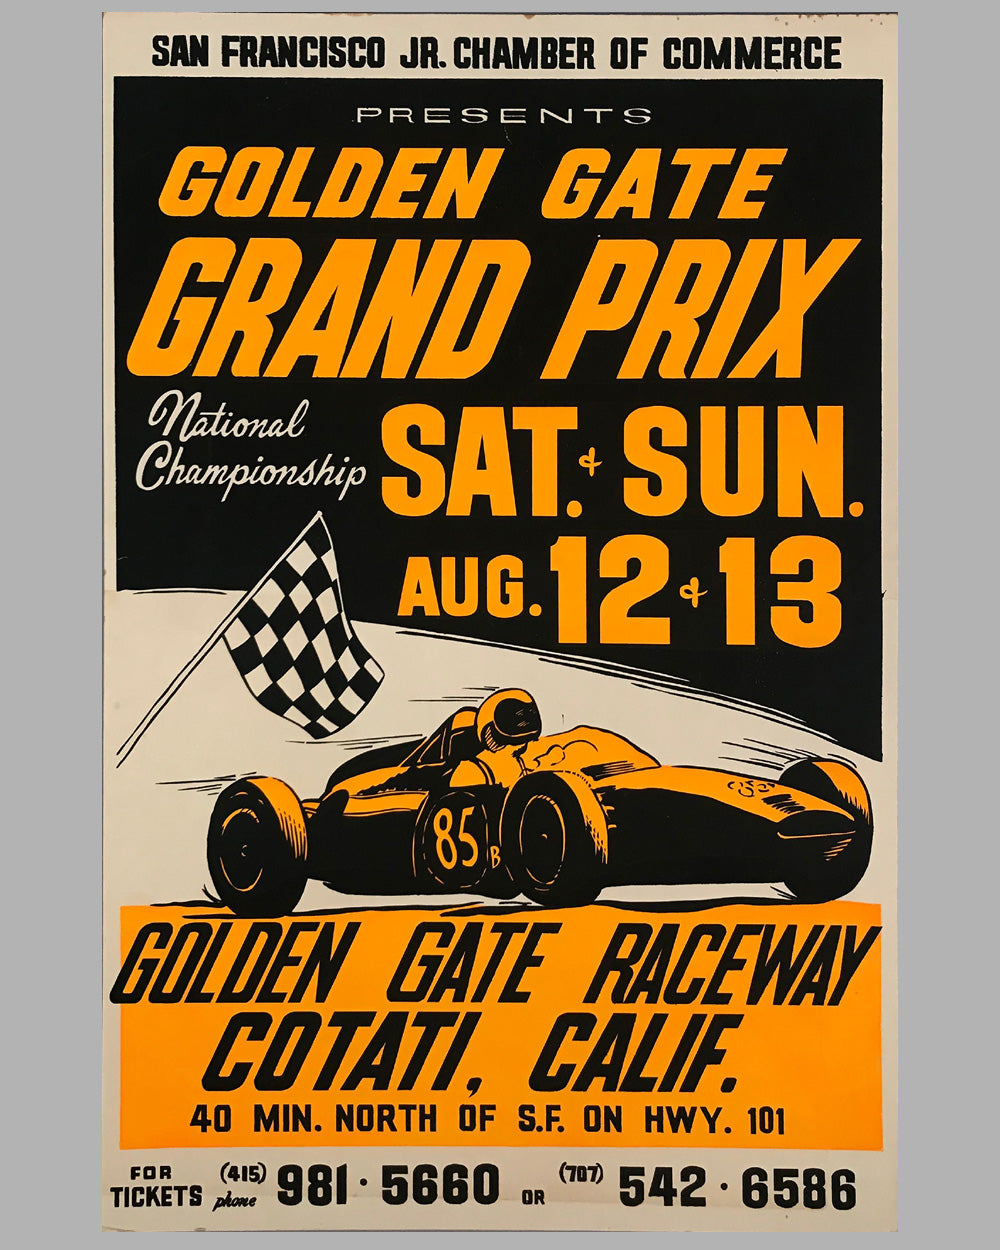 Golden Gate Grand Prix original advertising poster, 1961